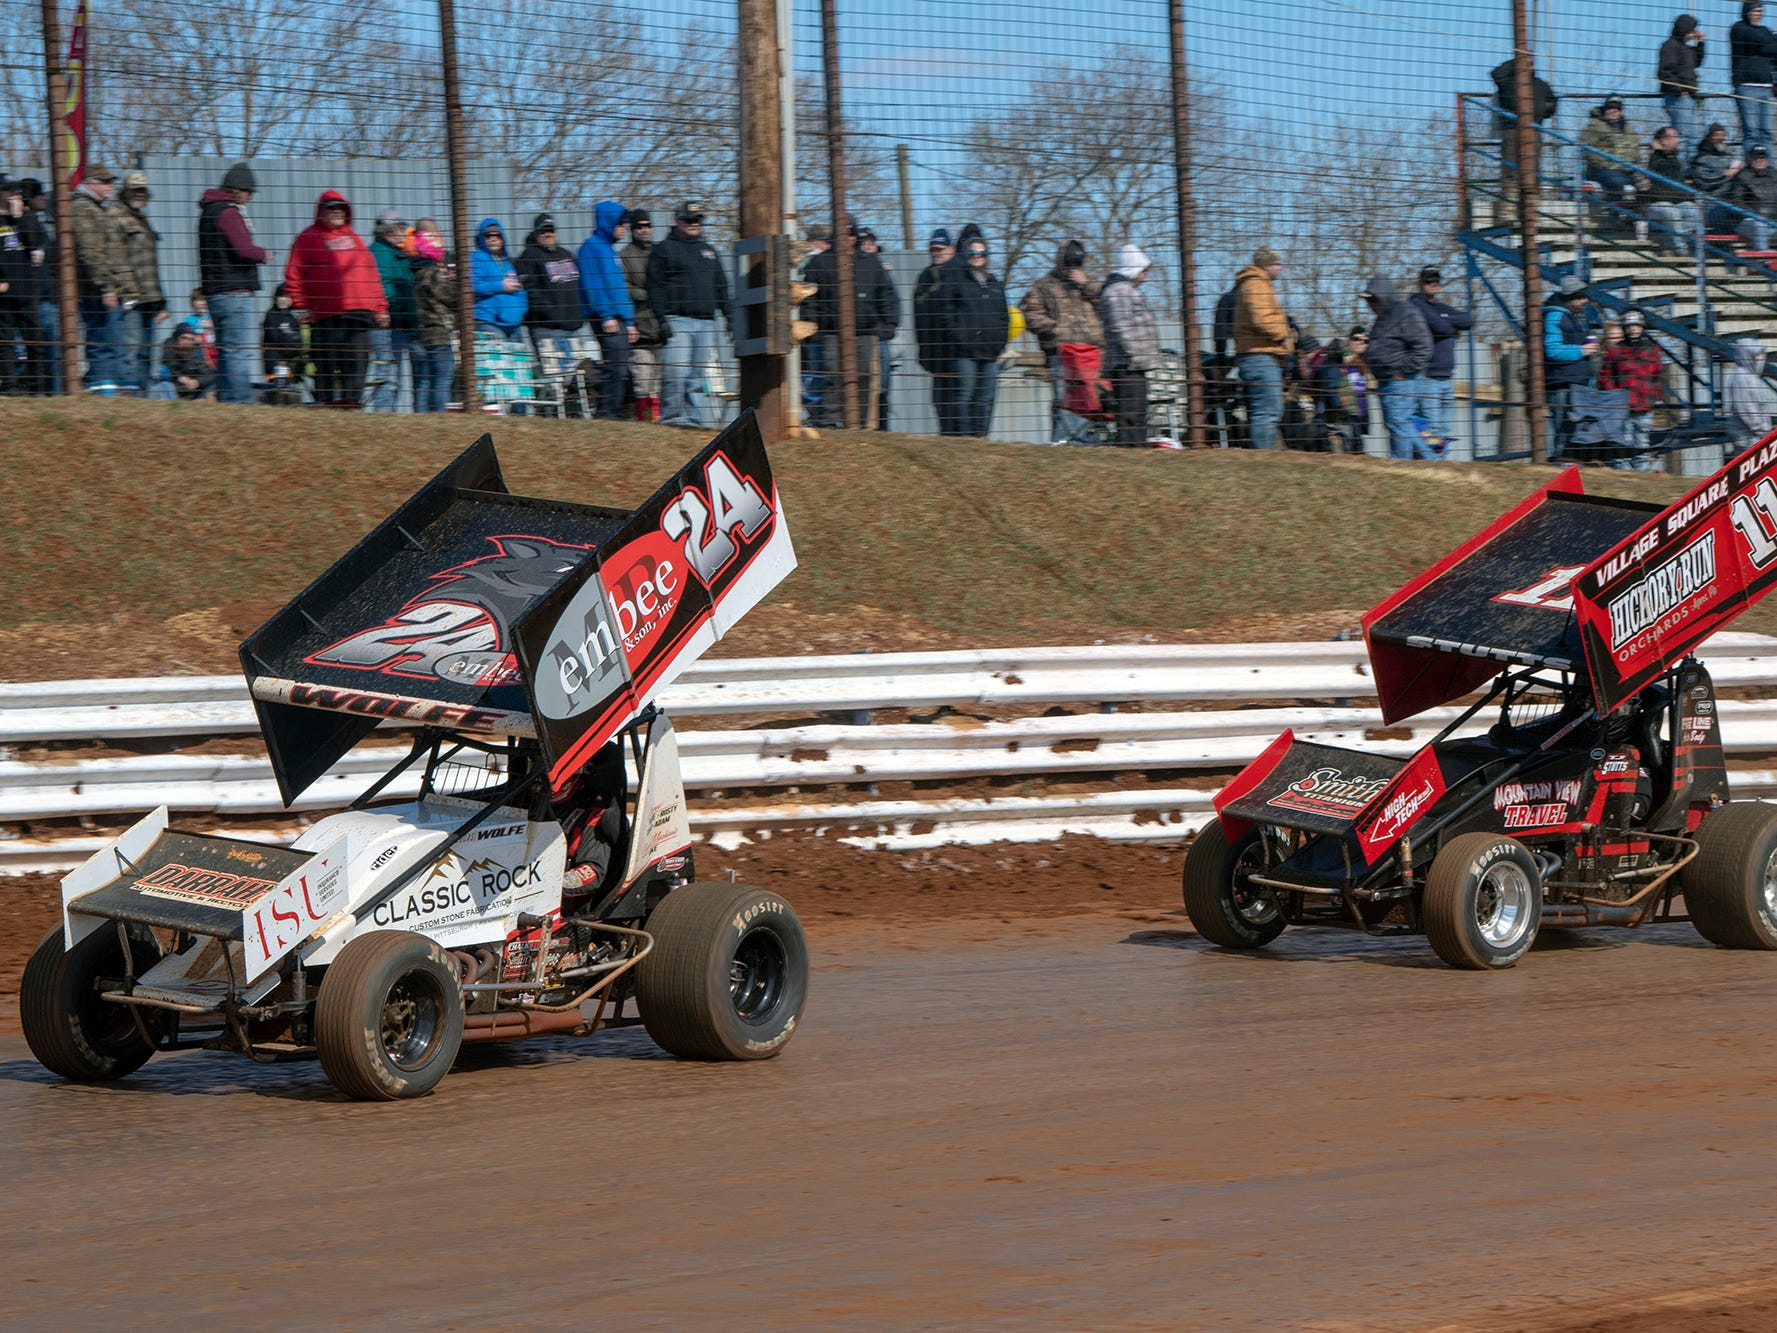 The #24 car driven by Lucus Wolfe and the the #11 car driven by TJ Stutts pass fans on the back stretch during Williams Grove season opener for 410 sprints Sunday March 17, 2019.